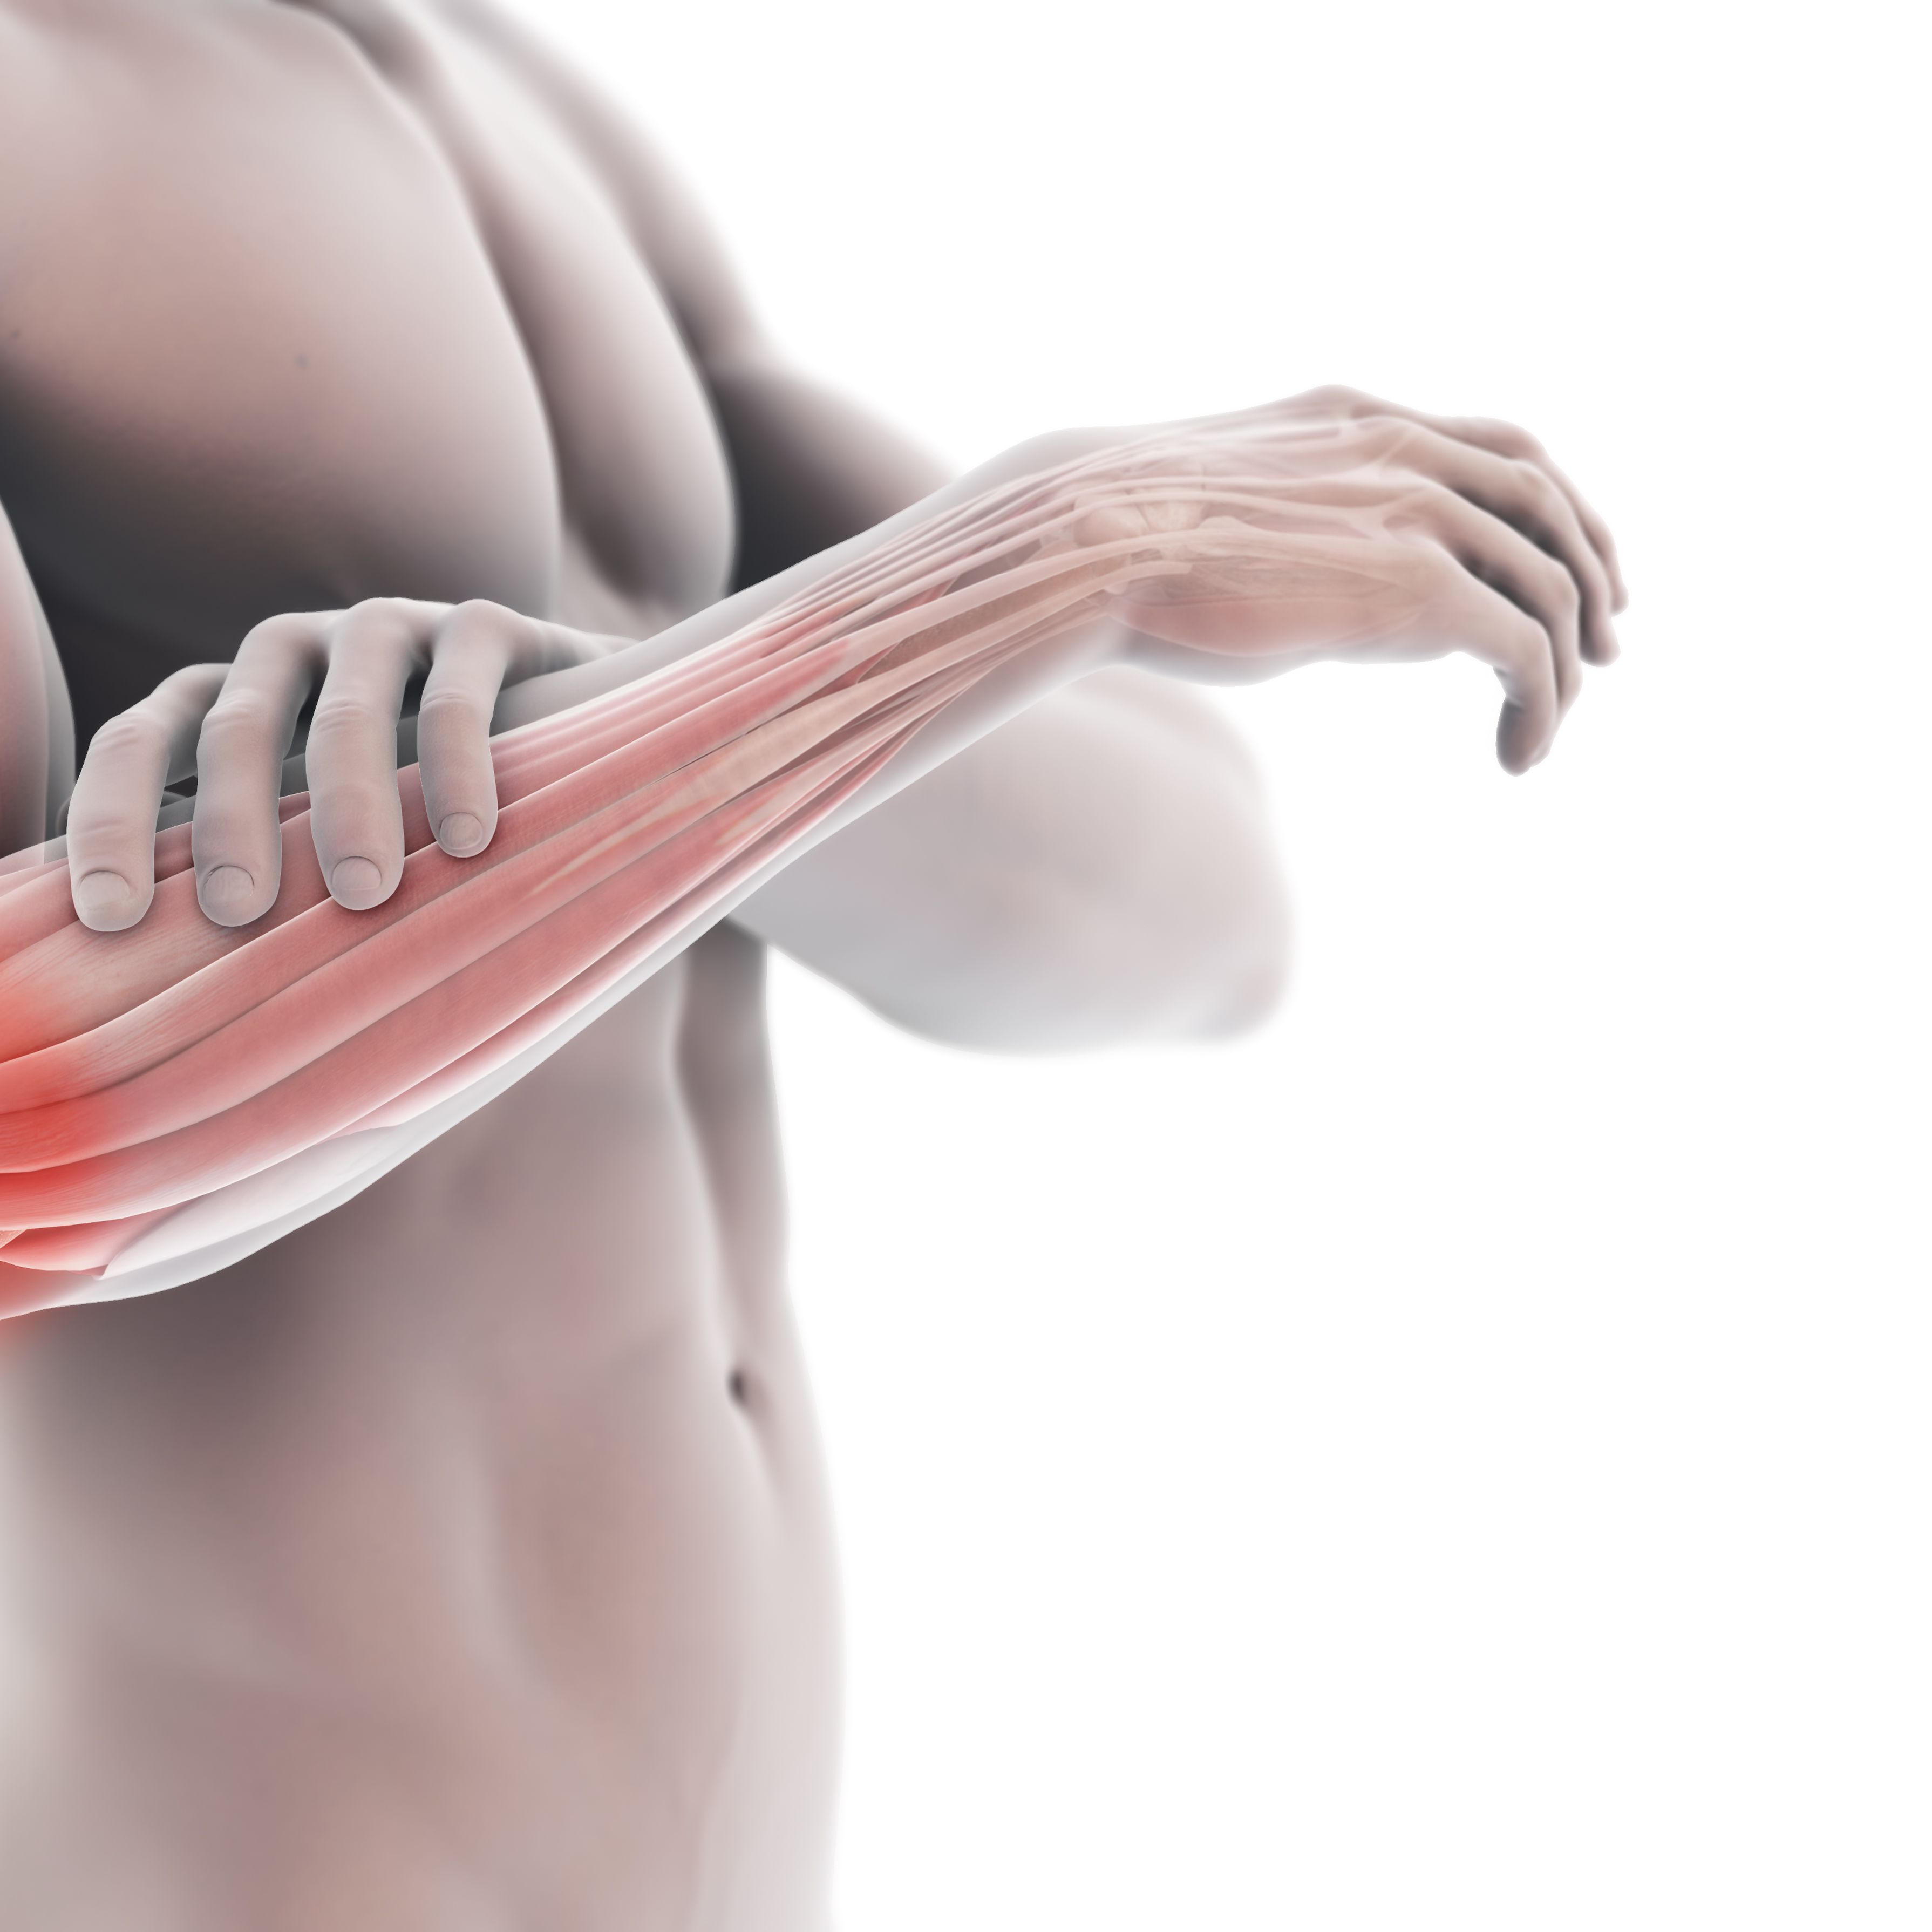 Injections for Treating Tennis Elbow